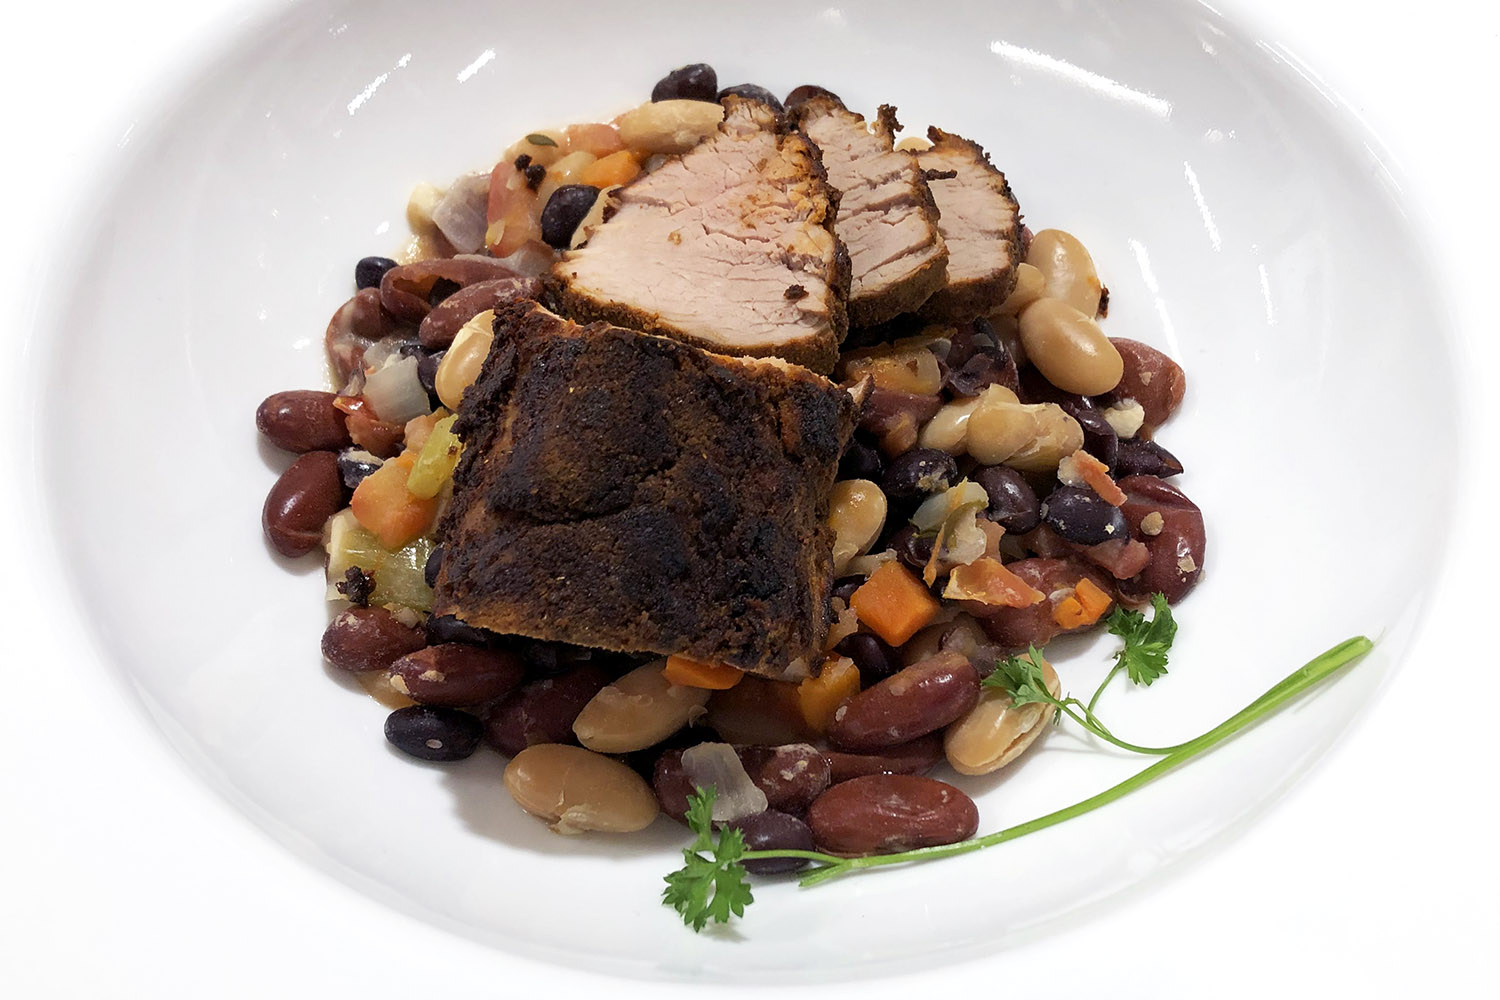 Slices of roasted meat on a bed of different types of beans.